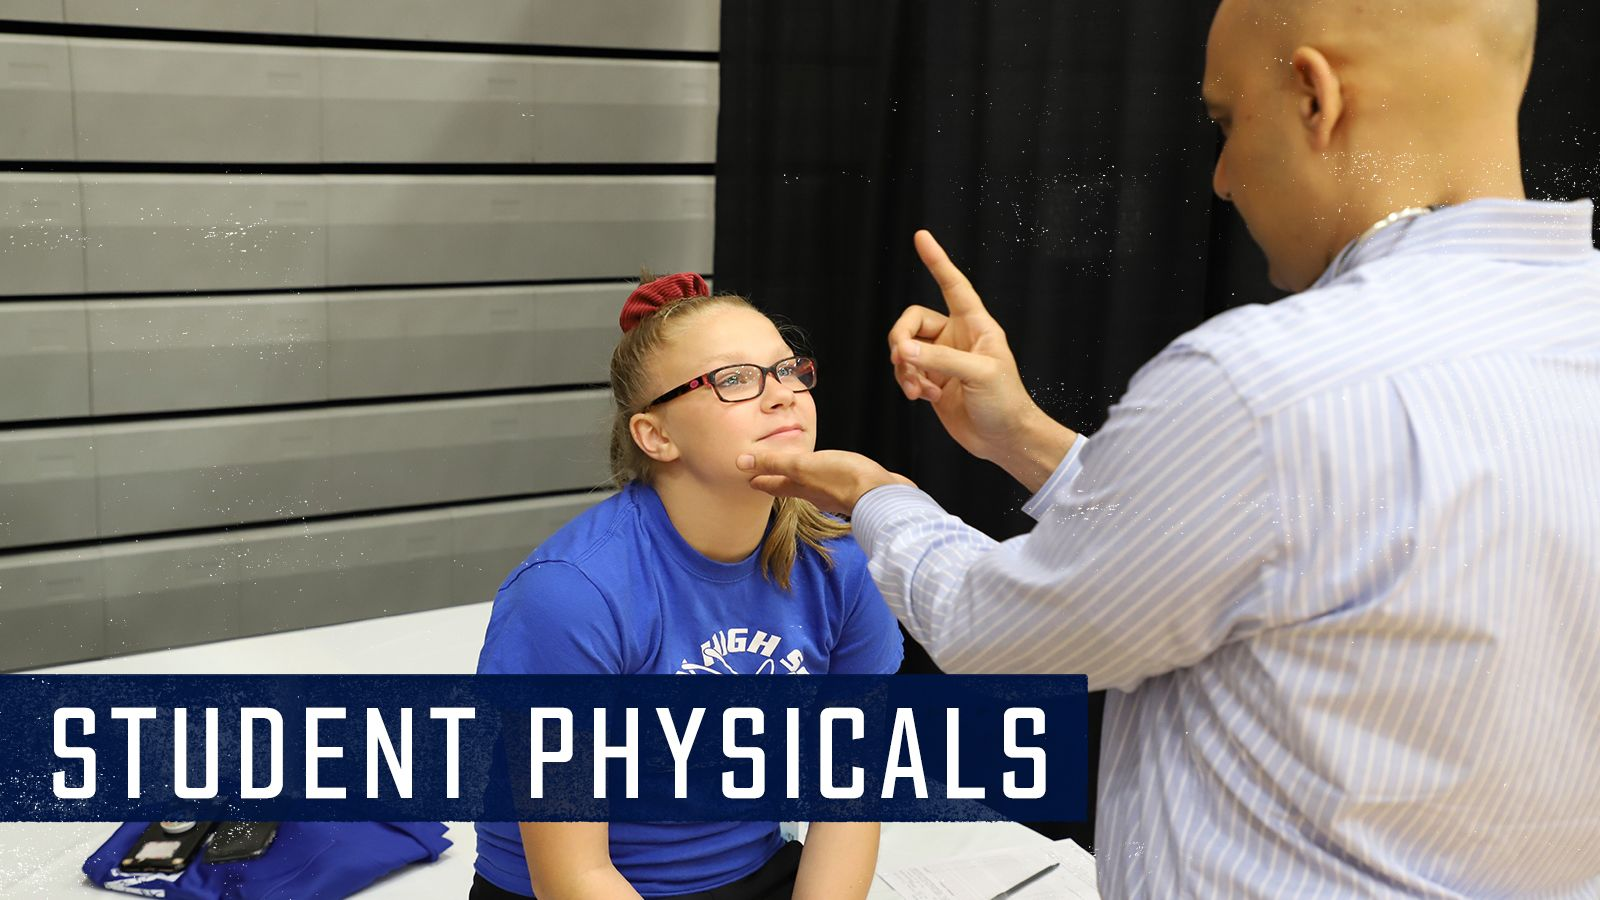 button_STUDENT PHYSICALS